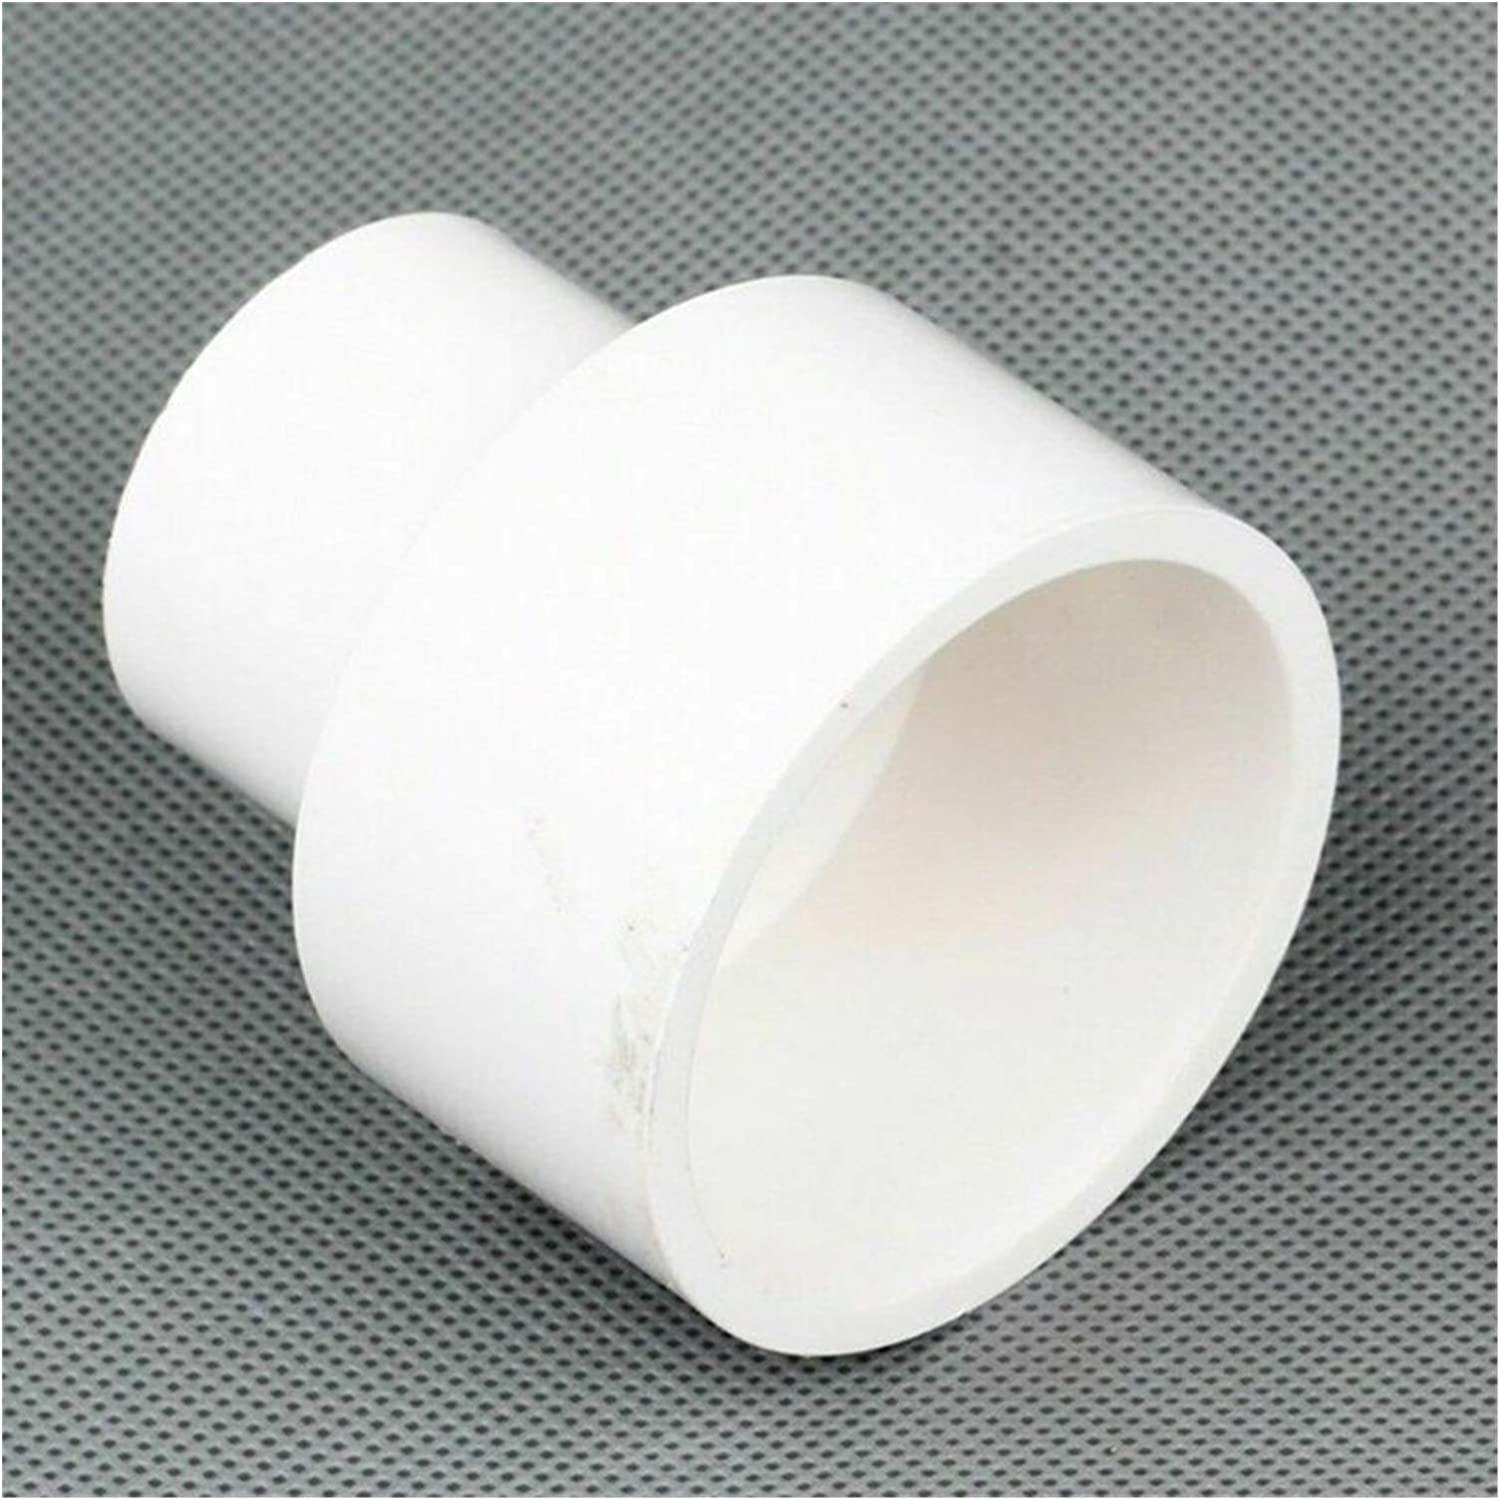 WQPY Vacuum Cleaner Minneapolis Mall Parts 50mm 32mm Compatibl Reducer Max 56% OFF Adaptor to